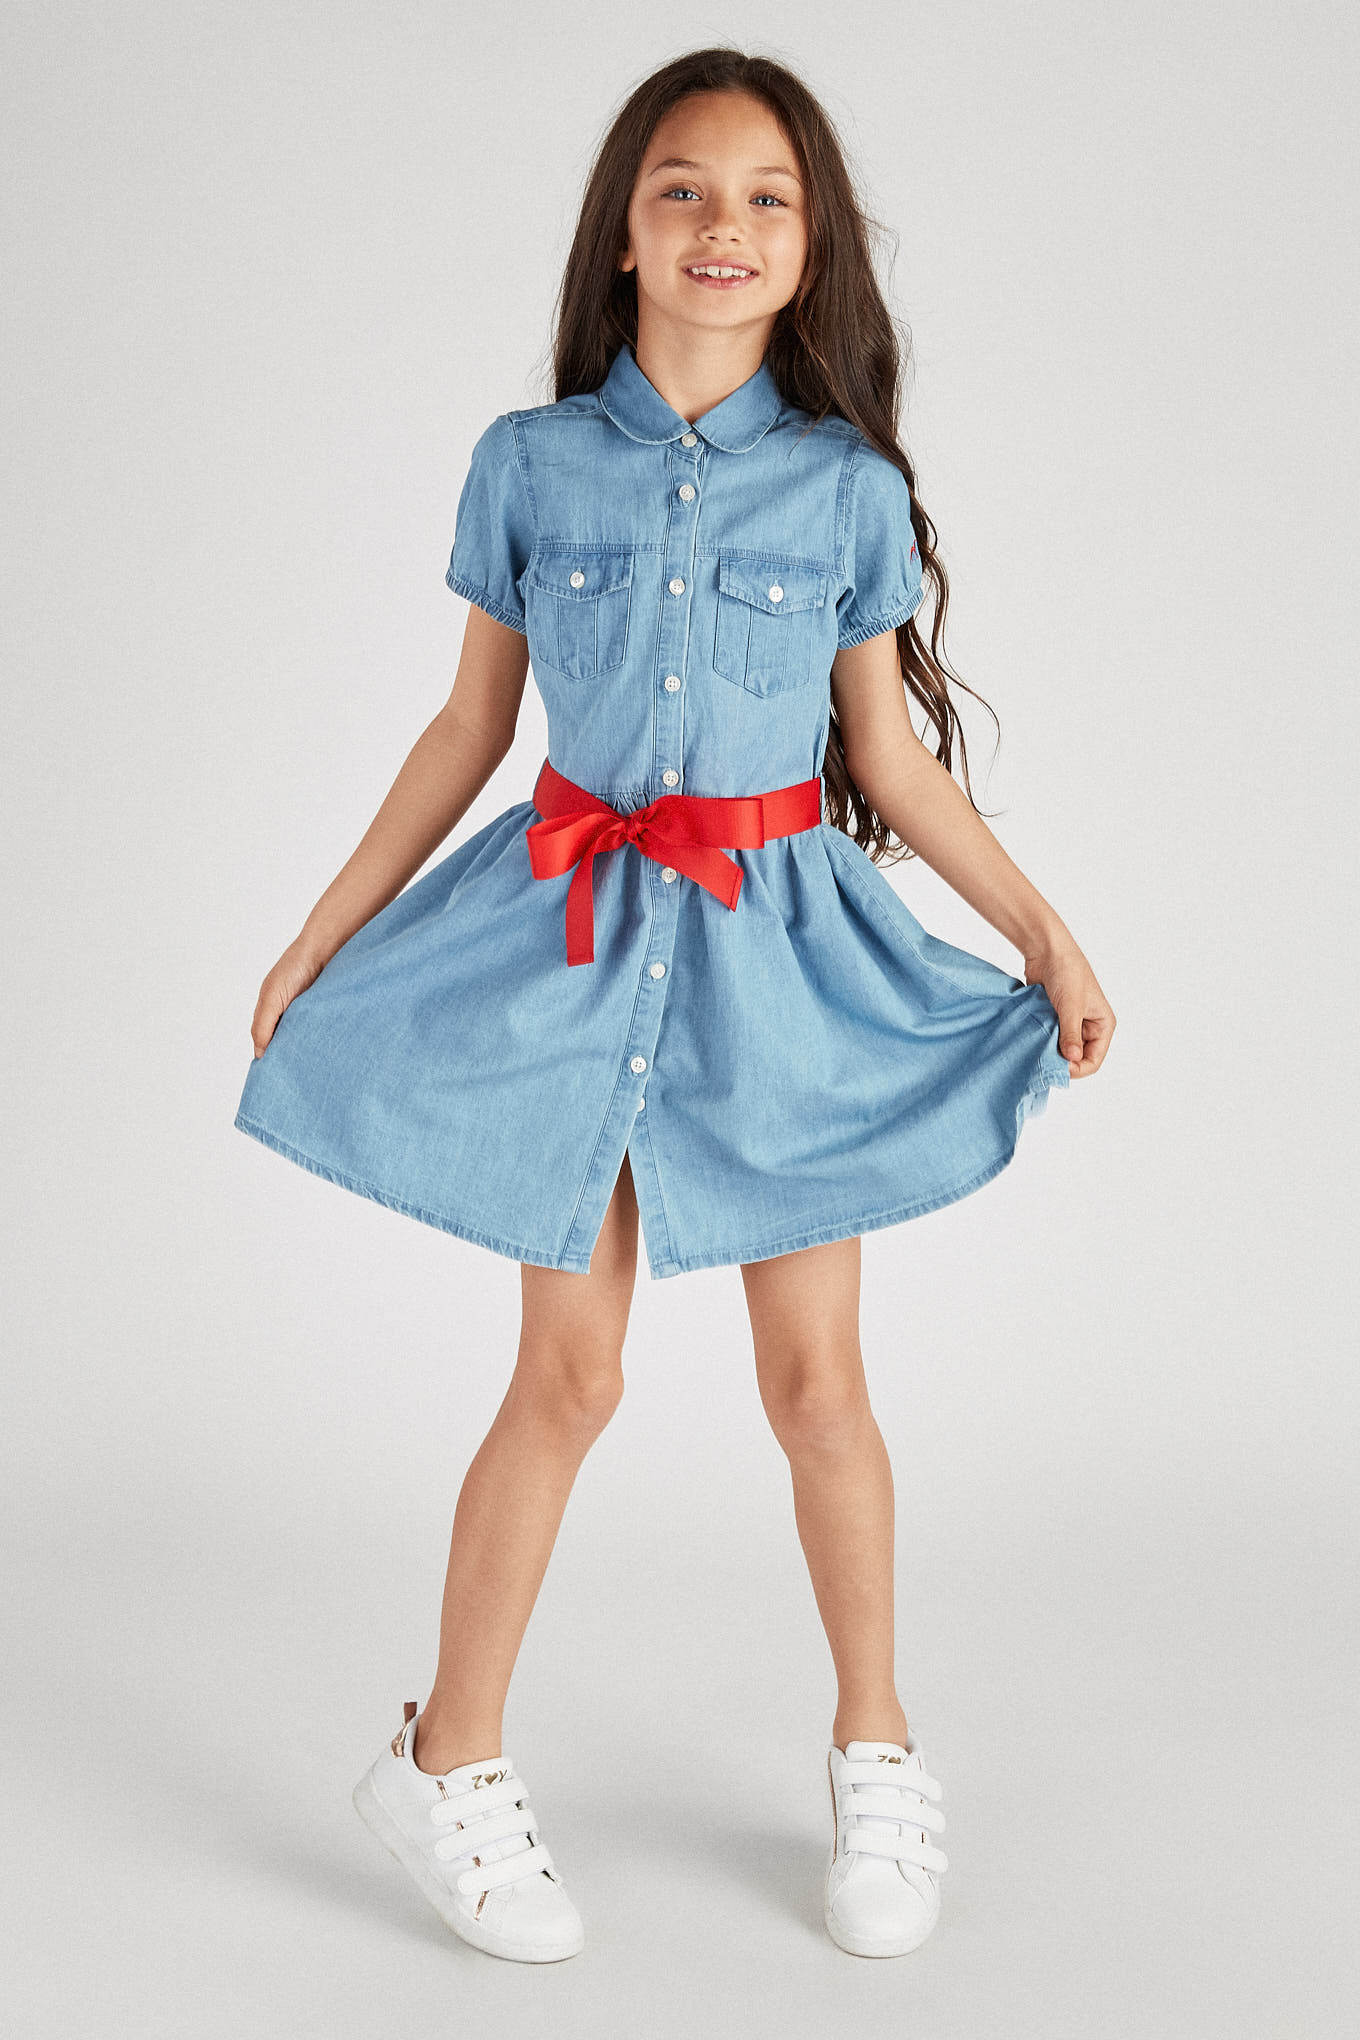 Shirt Dress Medium Blue Casual Girl